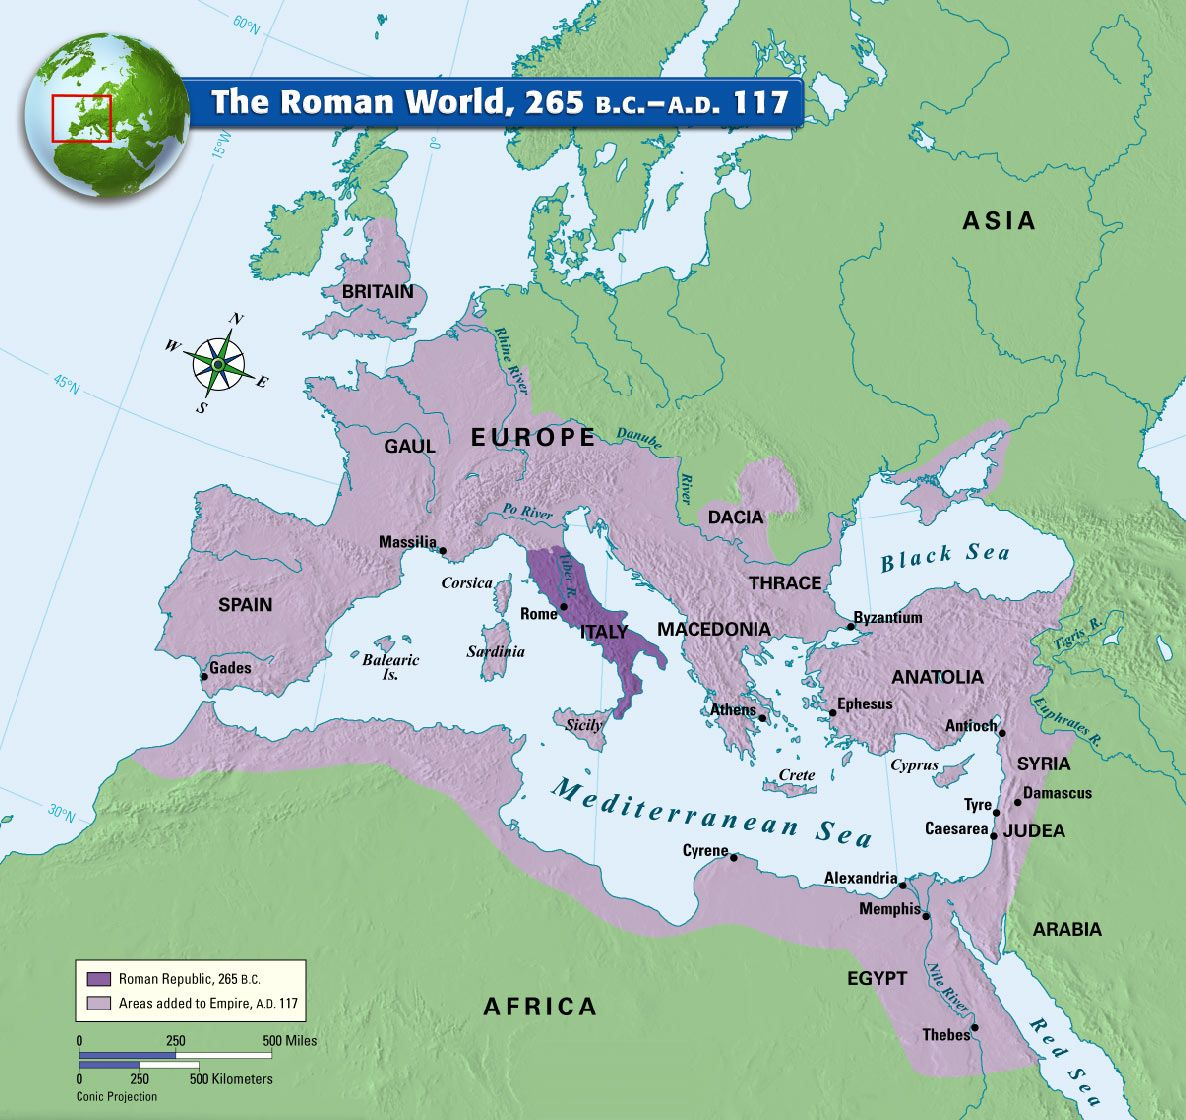 roman empire to 117 ad map The Roman World 265 B C A D 117 Ancient World History roman empire to 117 ad map